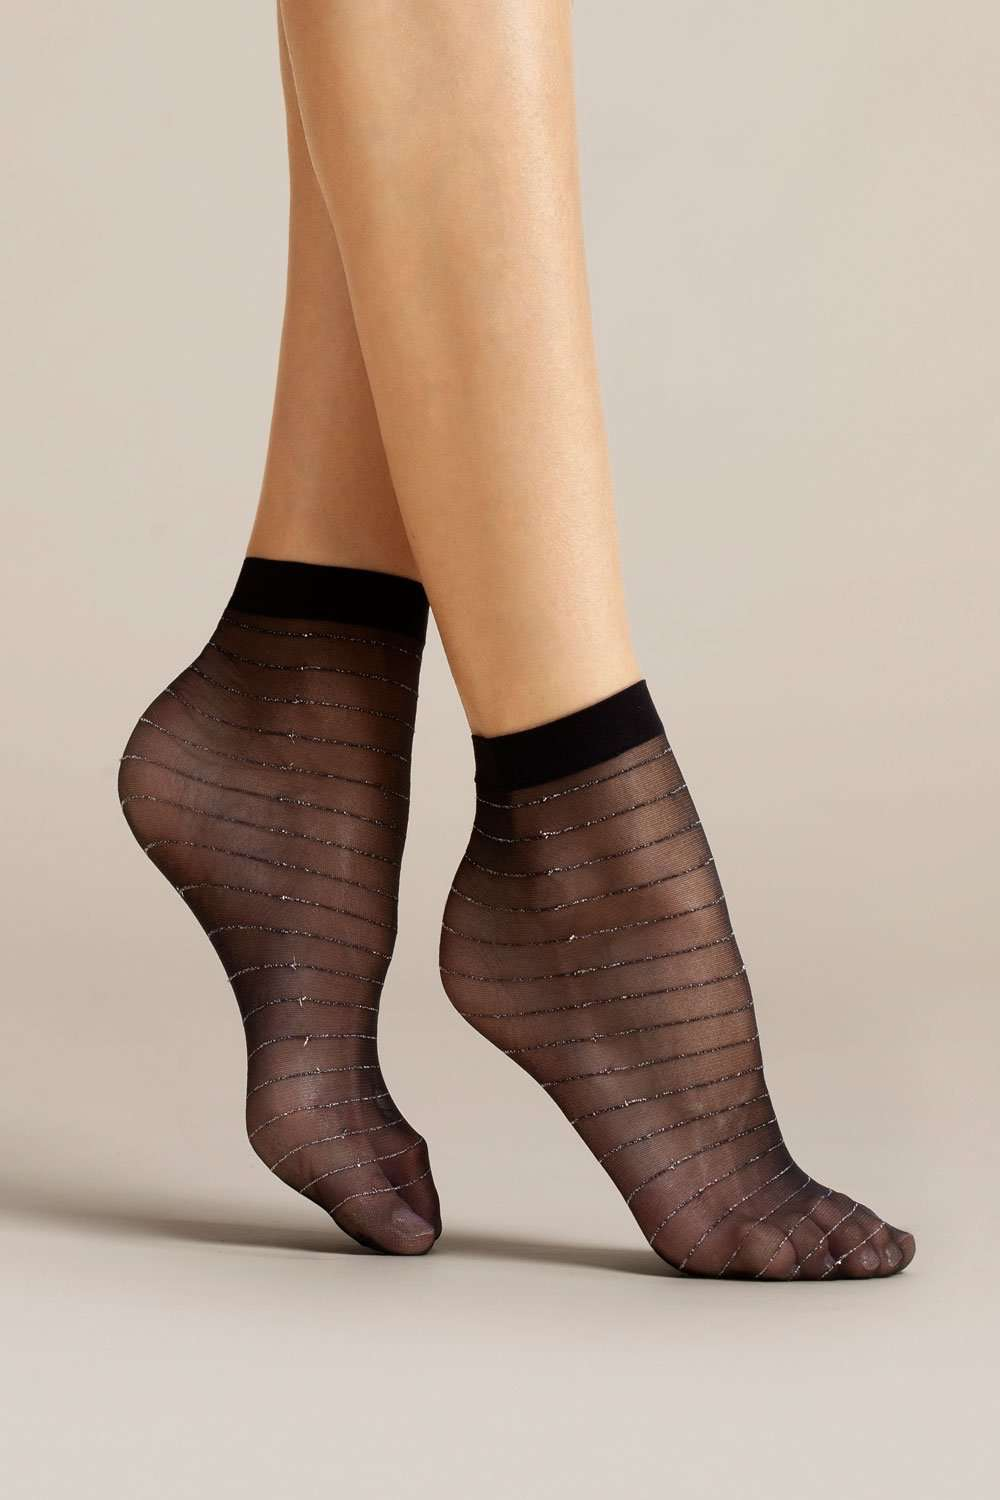 FiORE Anello Socks 20 Denier